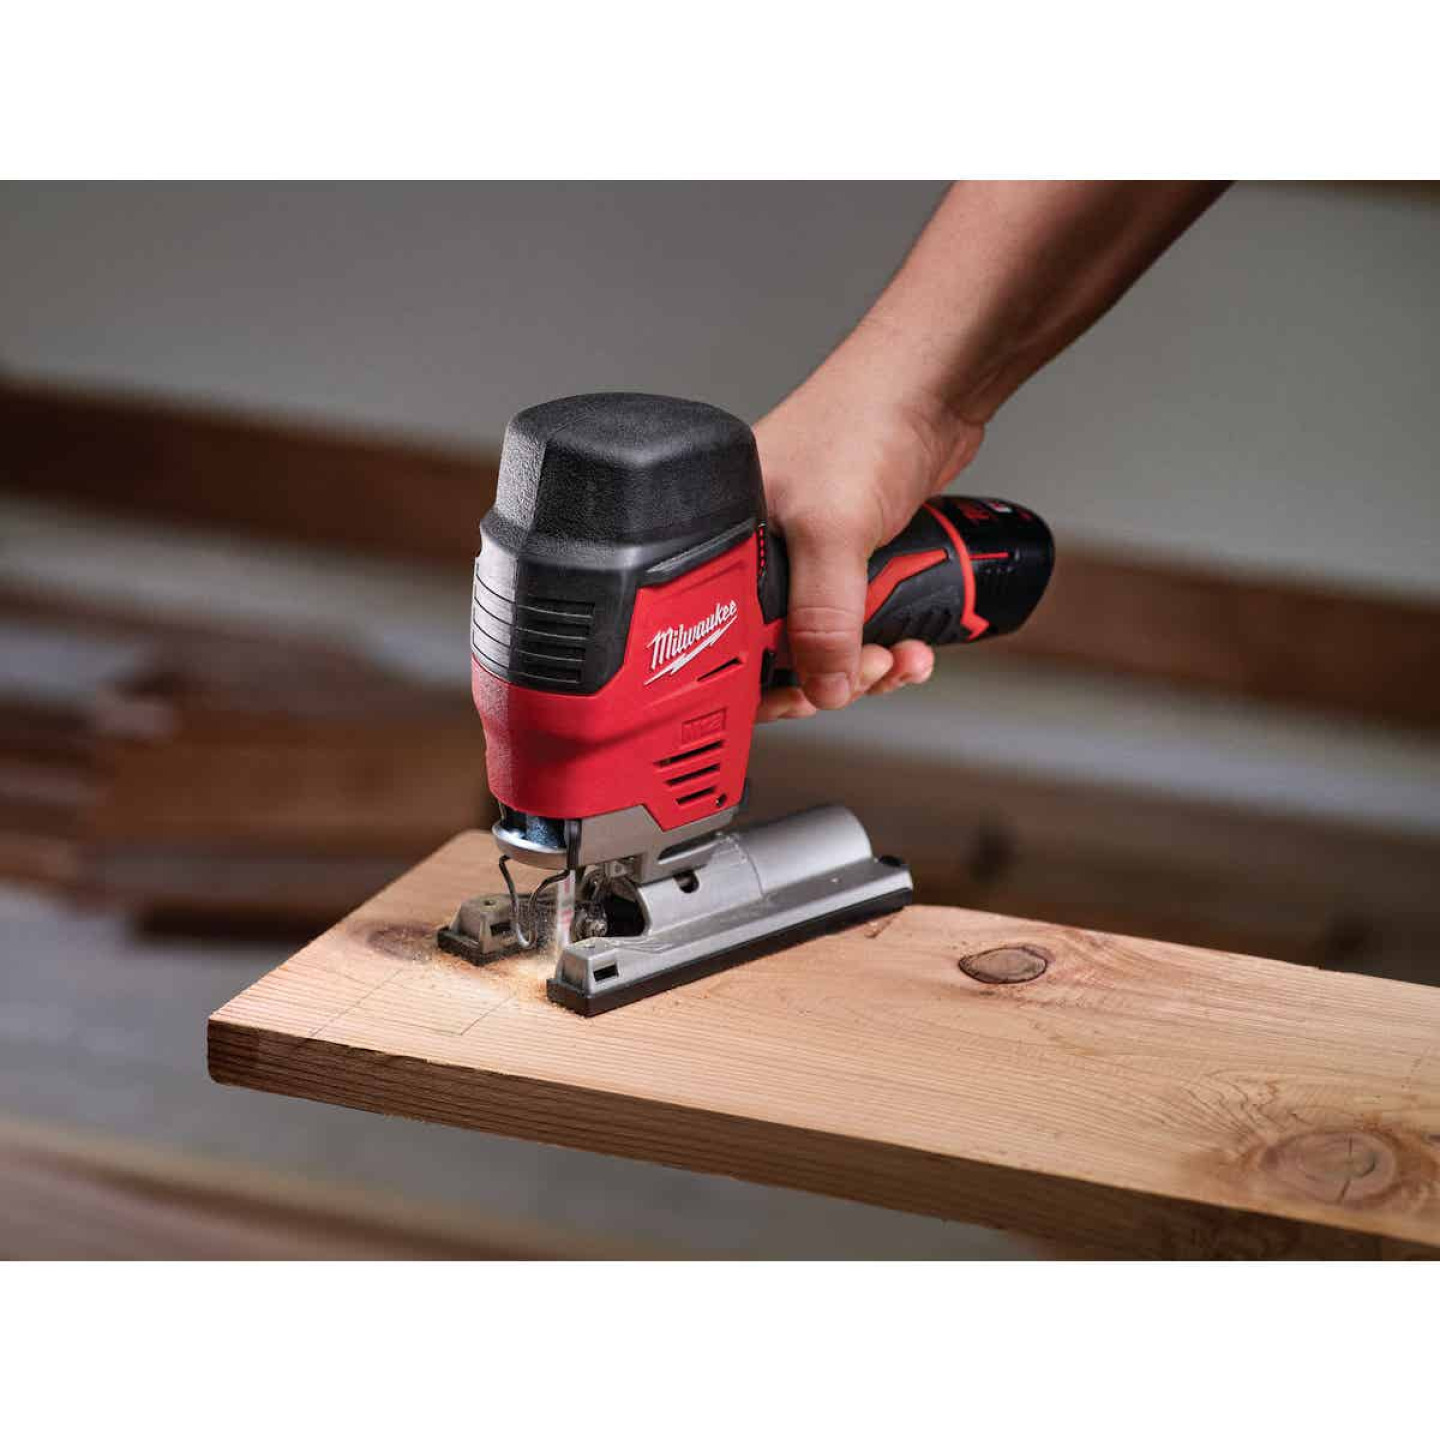 Milwaukee M12 12 Volt Lithium-Ion 1.5 Ah Cordless Jig Saw Kit Image 3